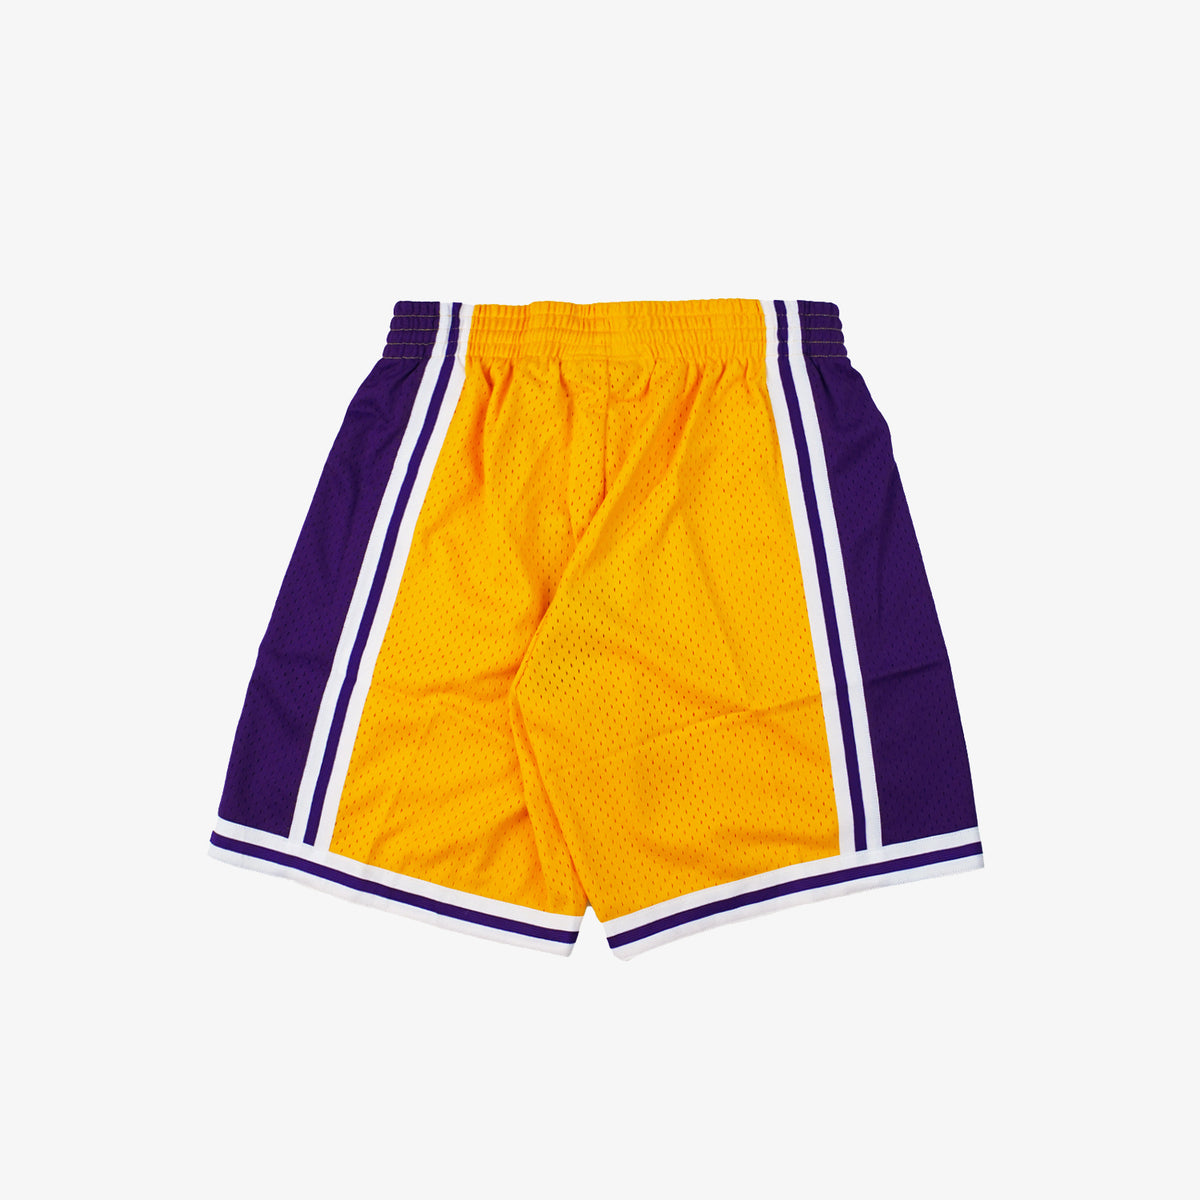 Los Angeles Lakers 96-97 HWC Swingman Shorts - Yellow